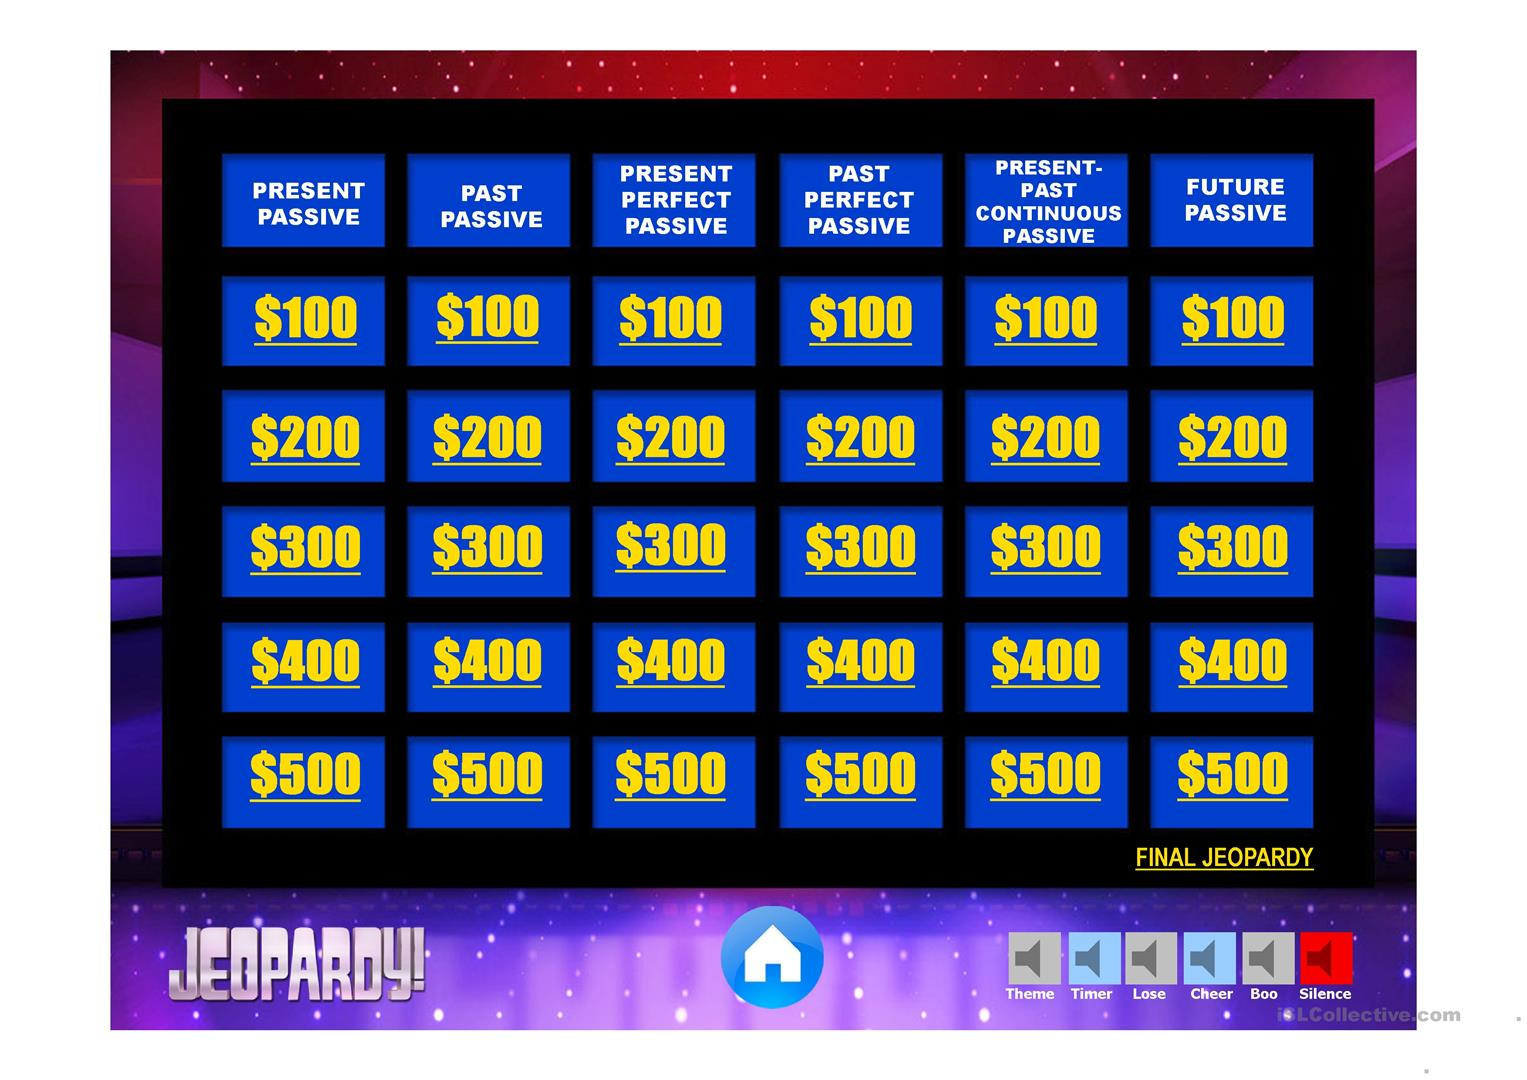 Passive Review Jeopardy Game